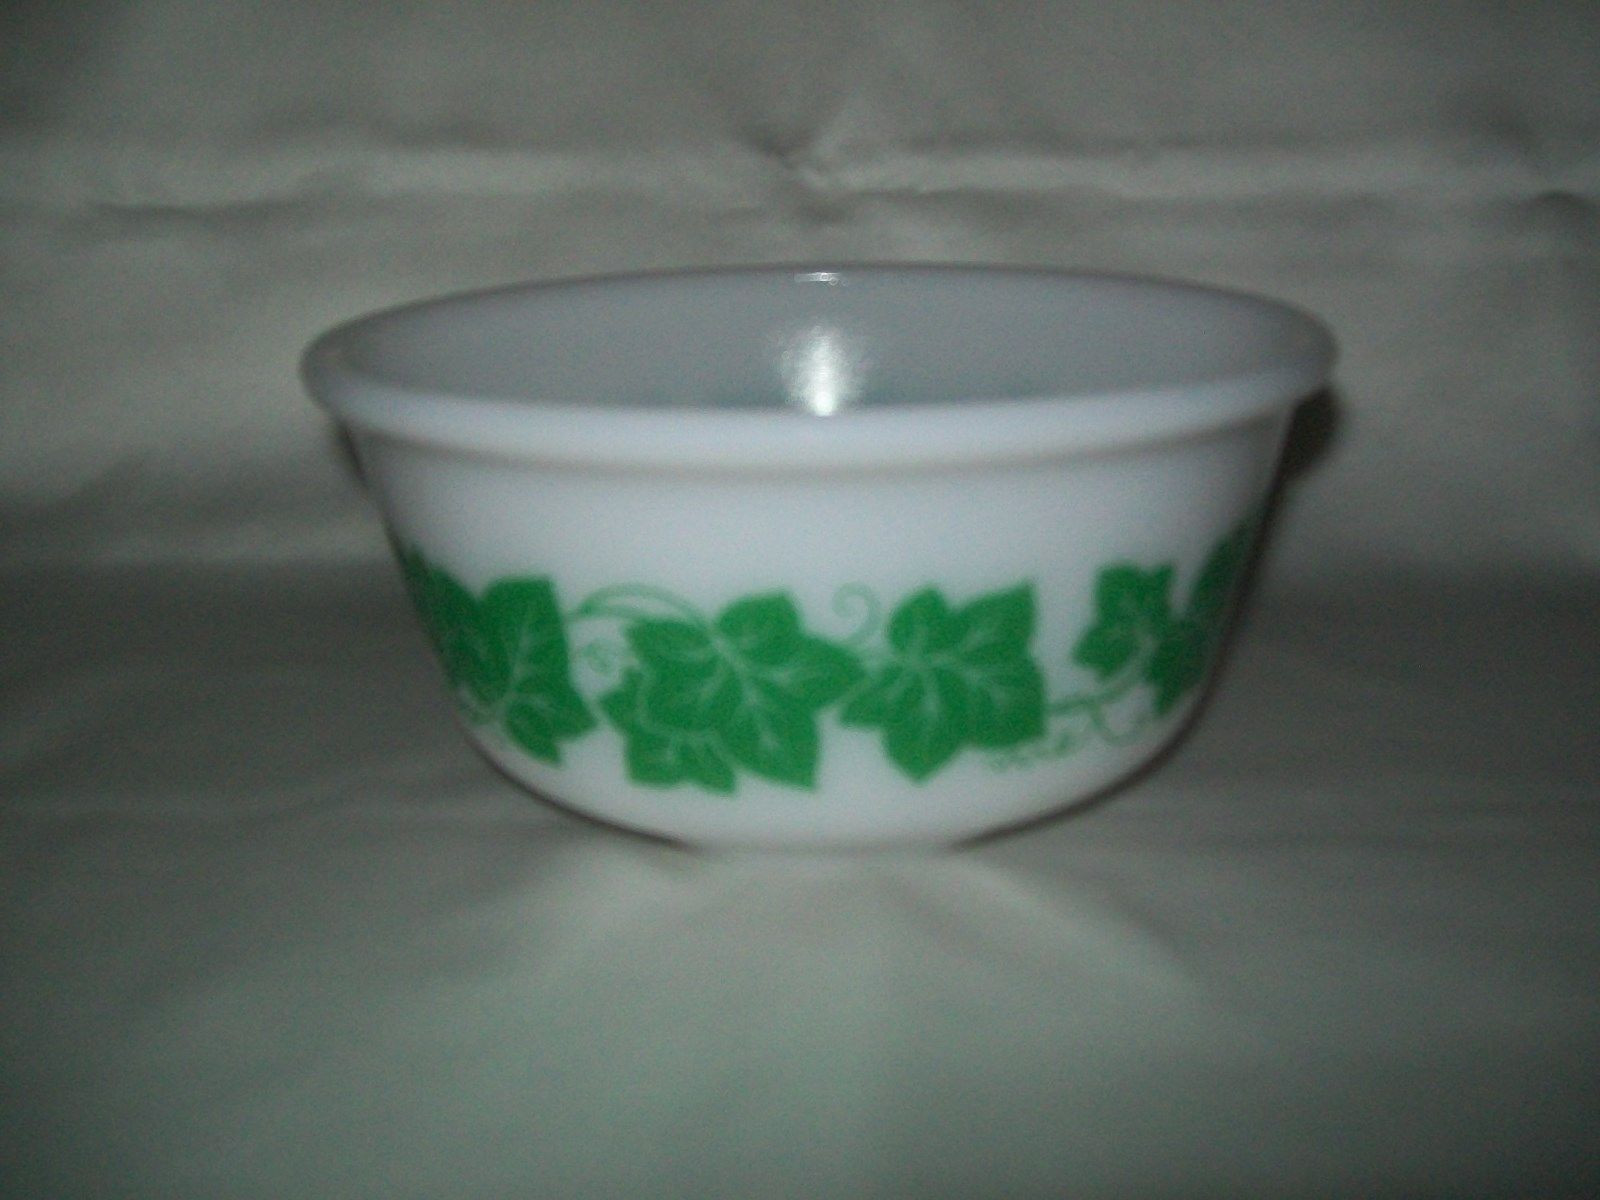 green milk glass vase of hazel atlas ivy milk glass nesting mixing bowl 1 qt 7 8 99 pertaining to 1 of 1only 1 available